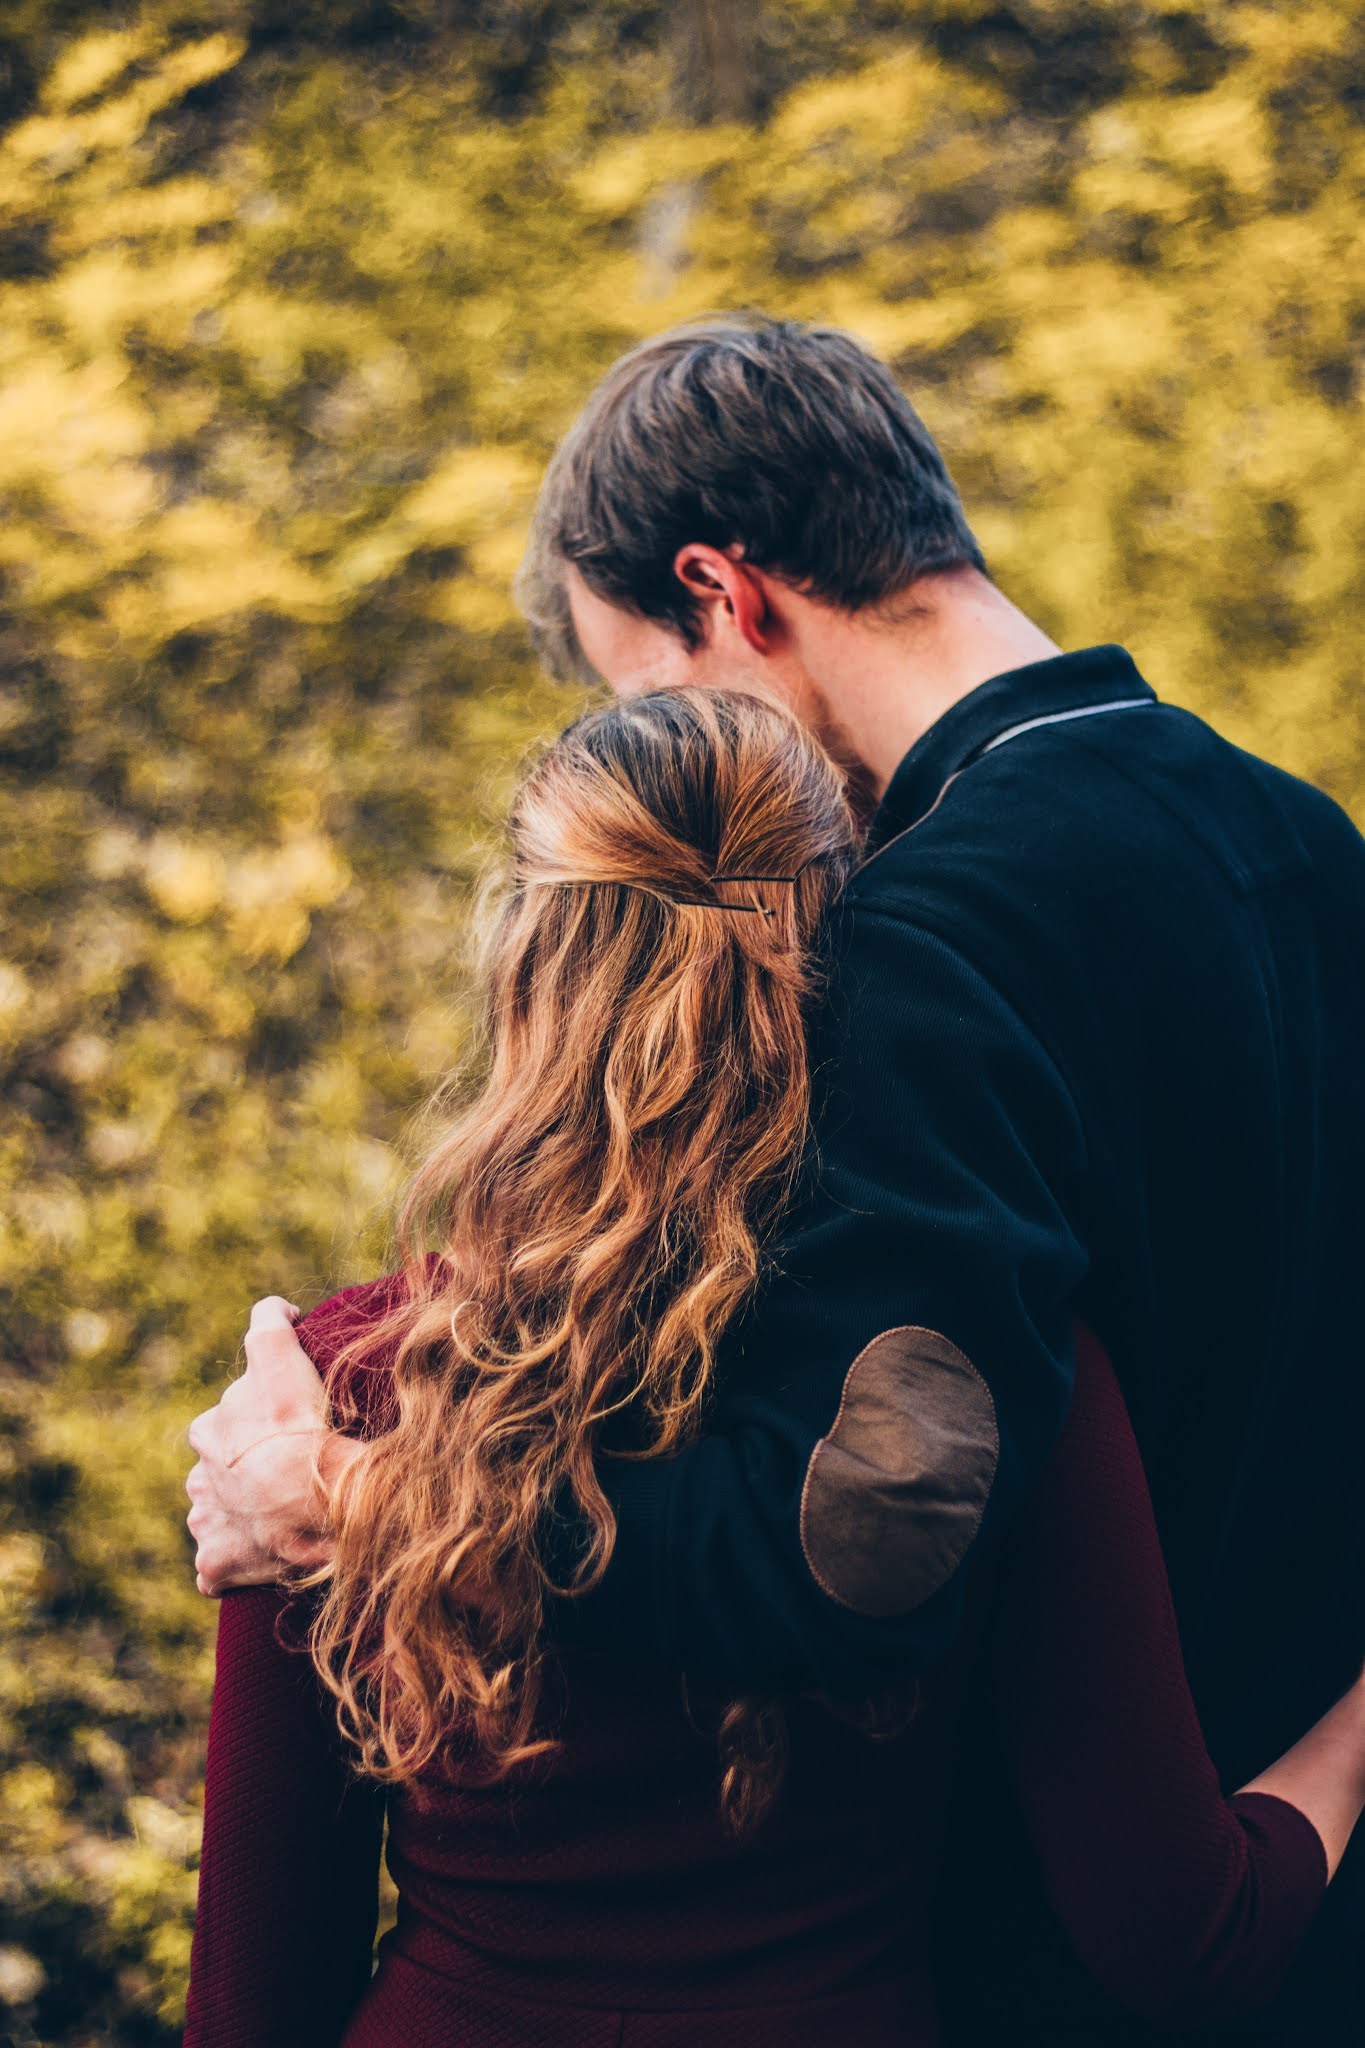 12 Ways to Build A Healthy Long-term Relationship